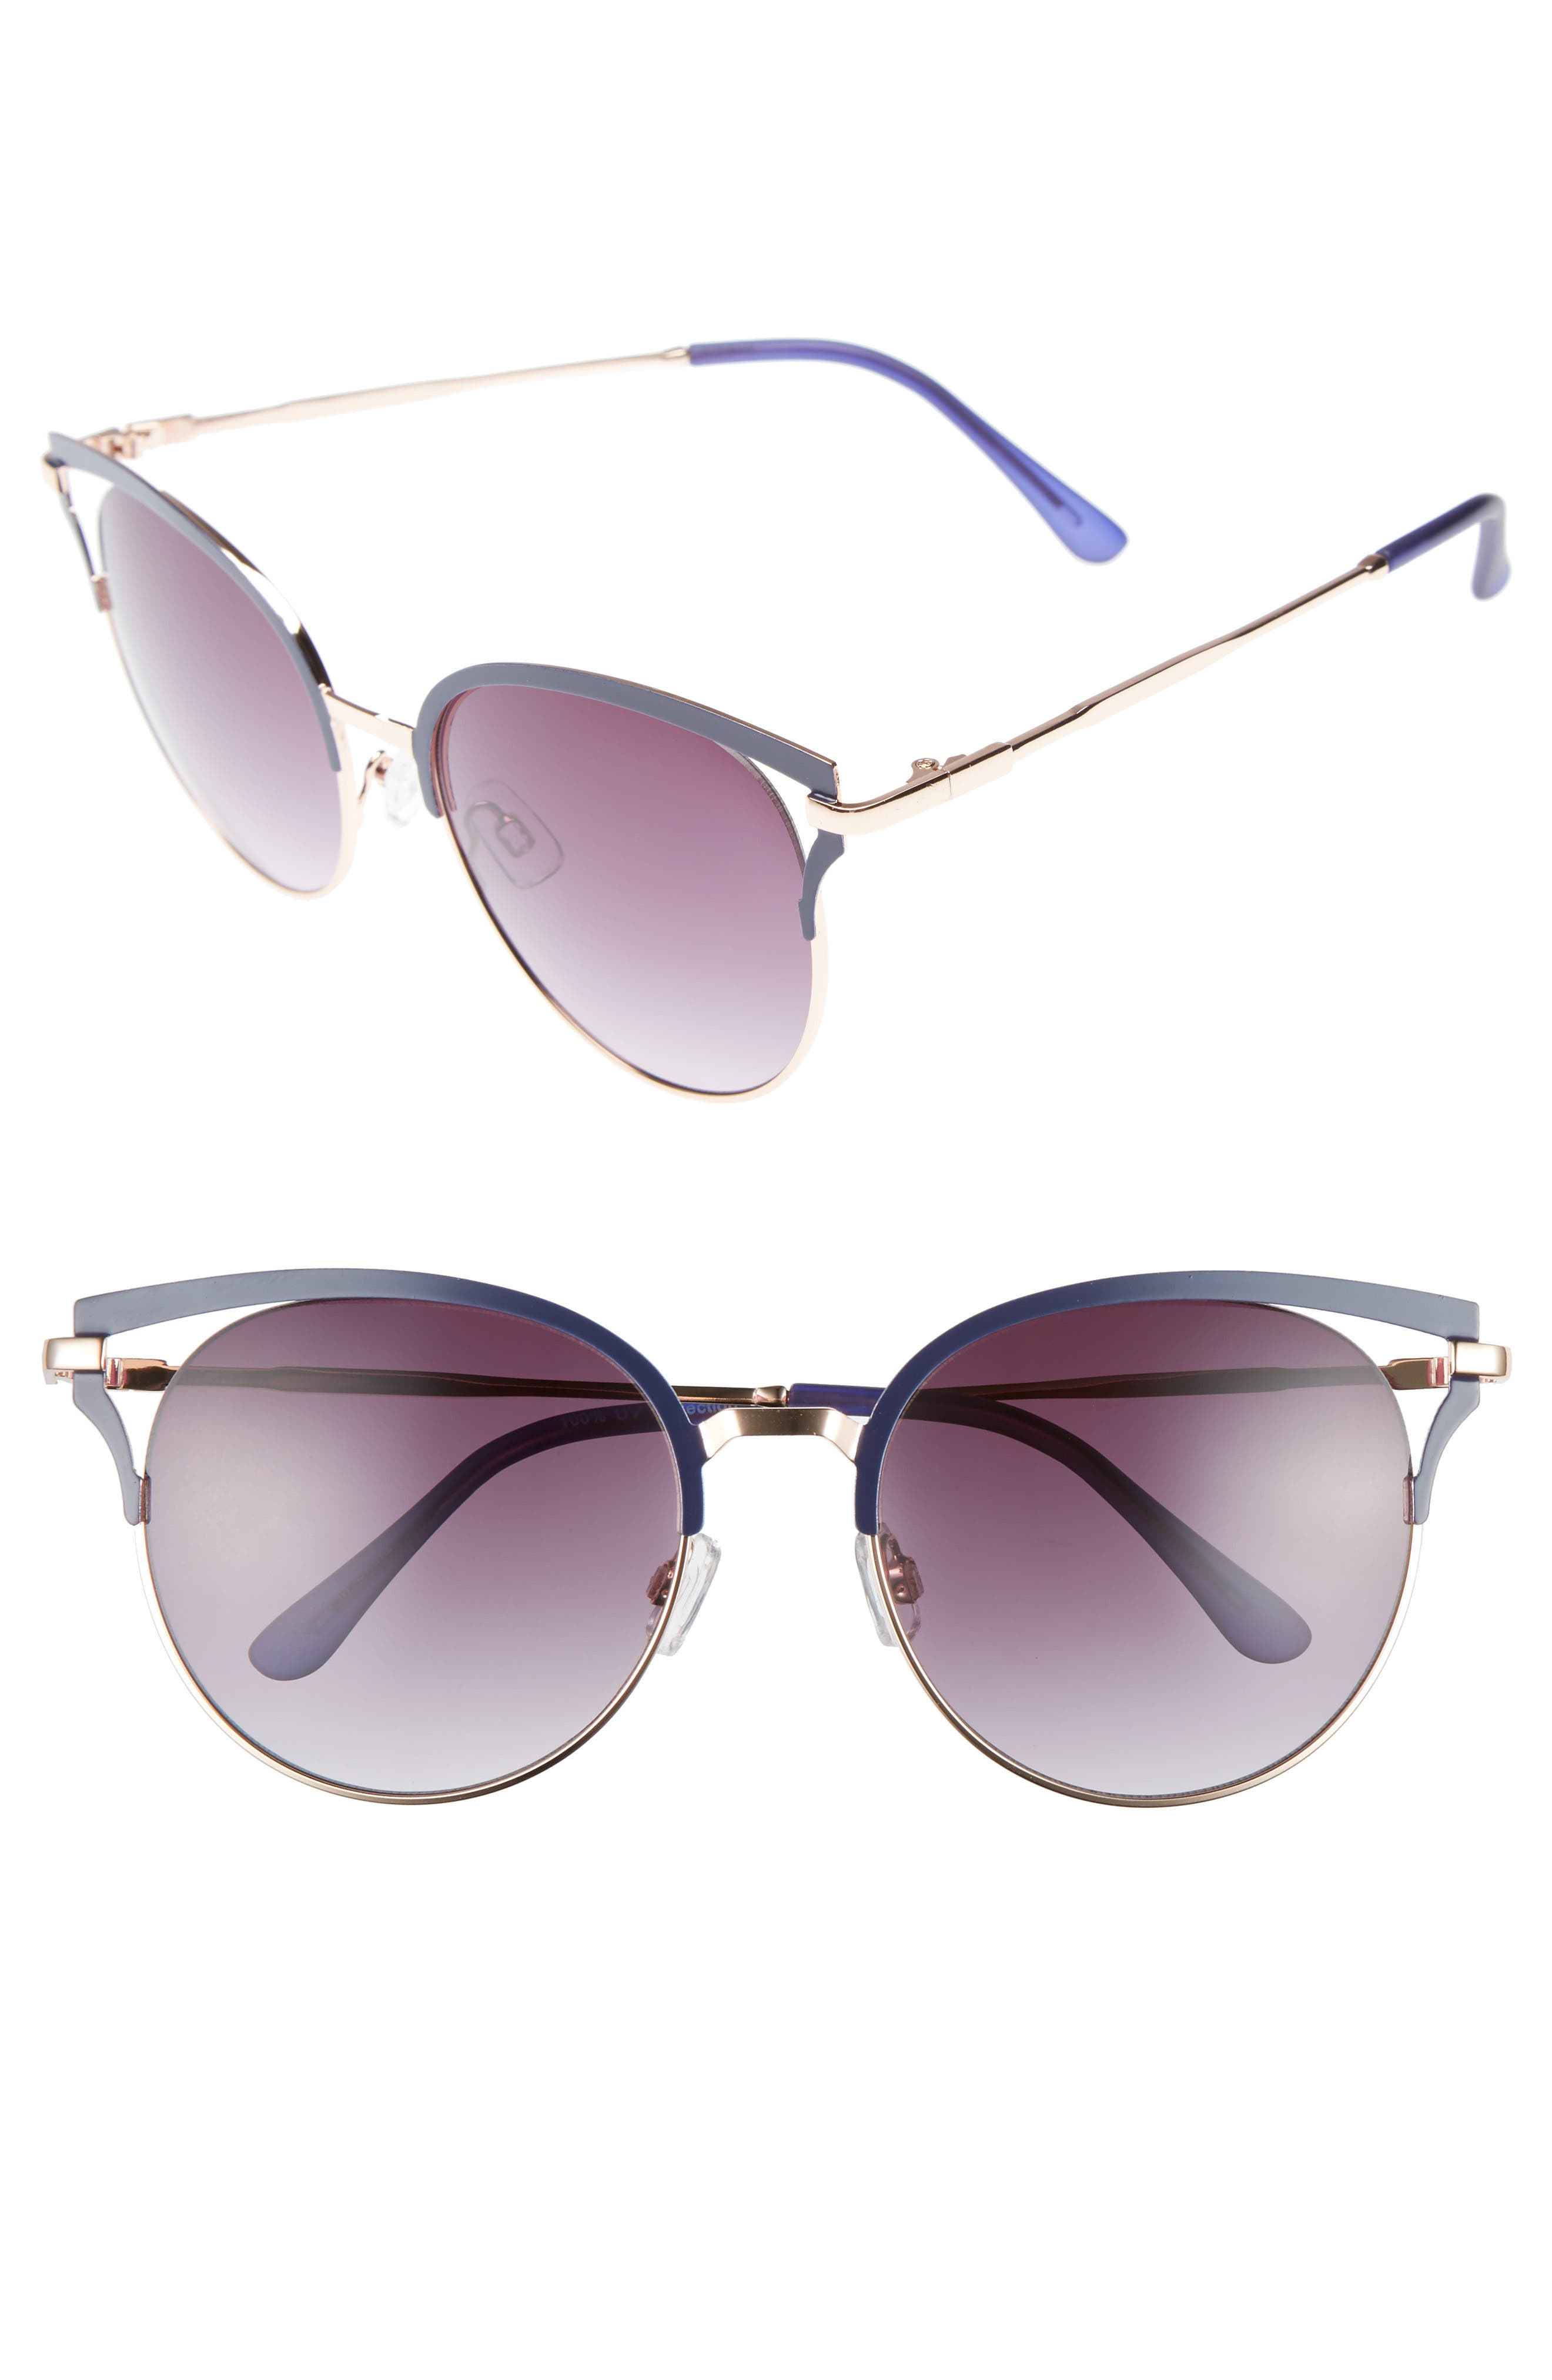 Alternate Image 1 Selected - BP. 55mm Colored Round Sunglasses